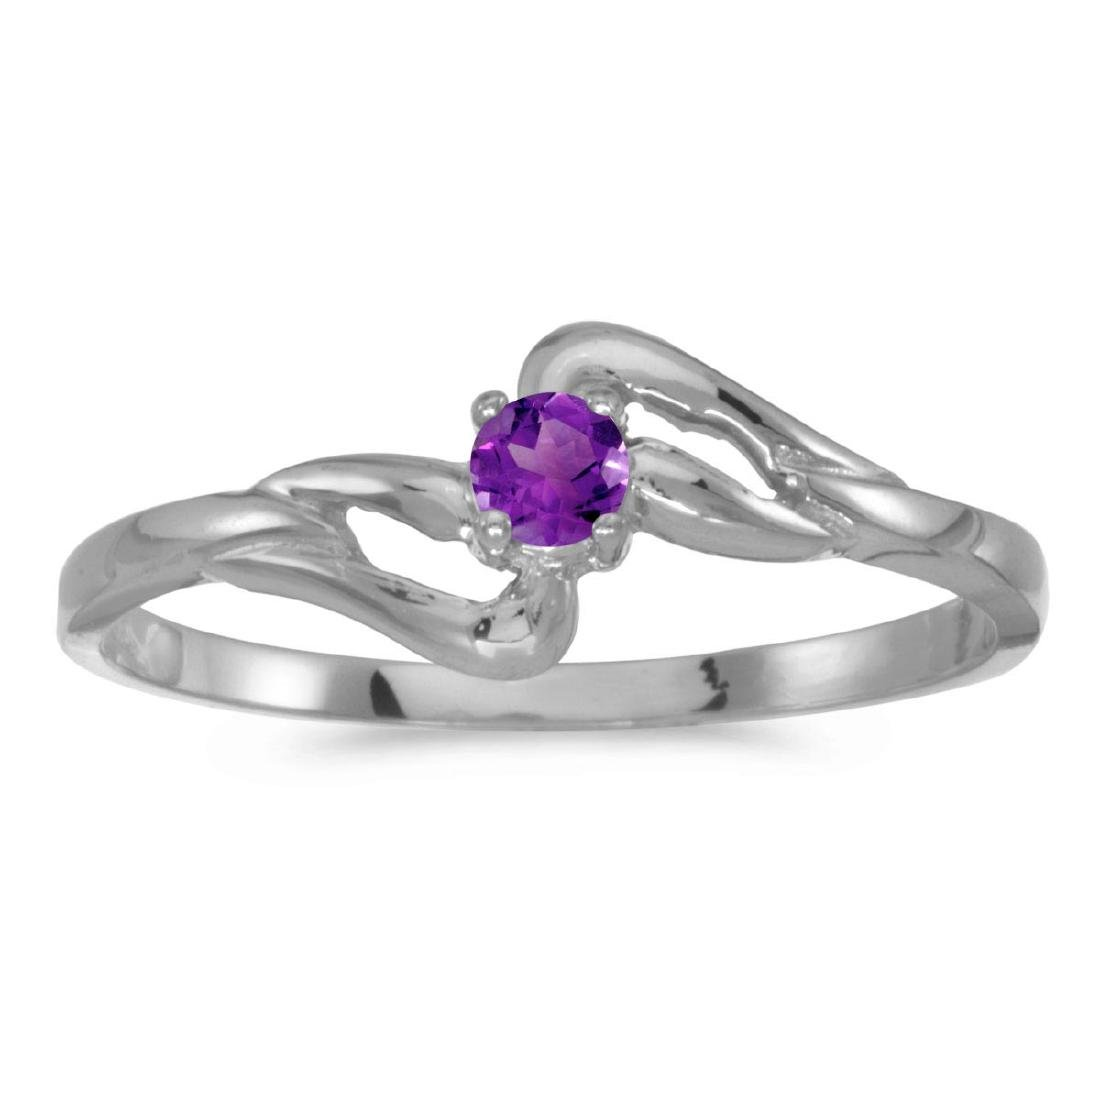 Certified 14k White Gold Round Amethyst Ring 0.08 CTW